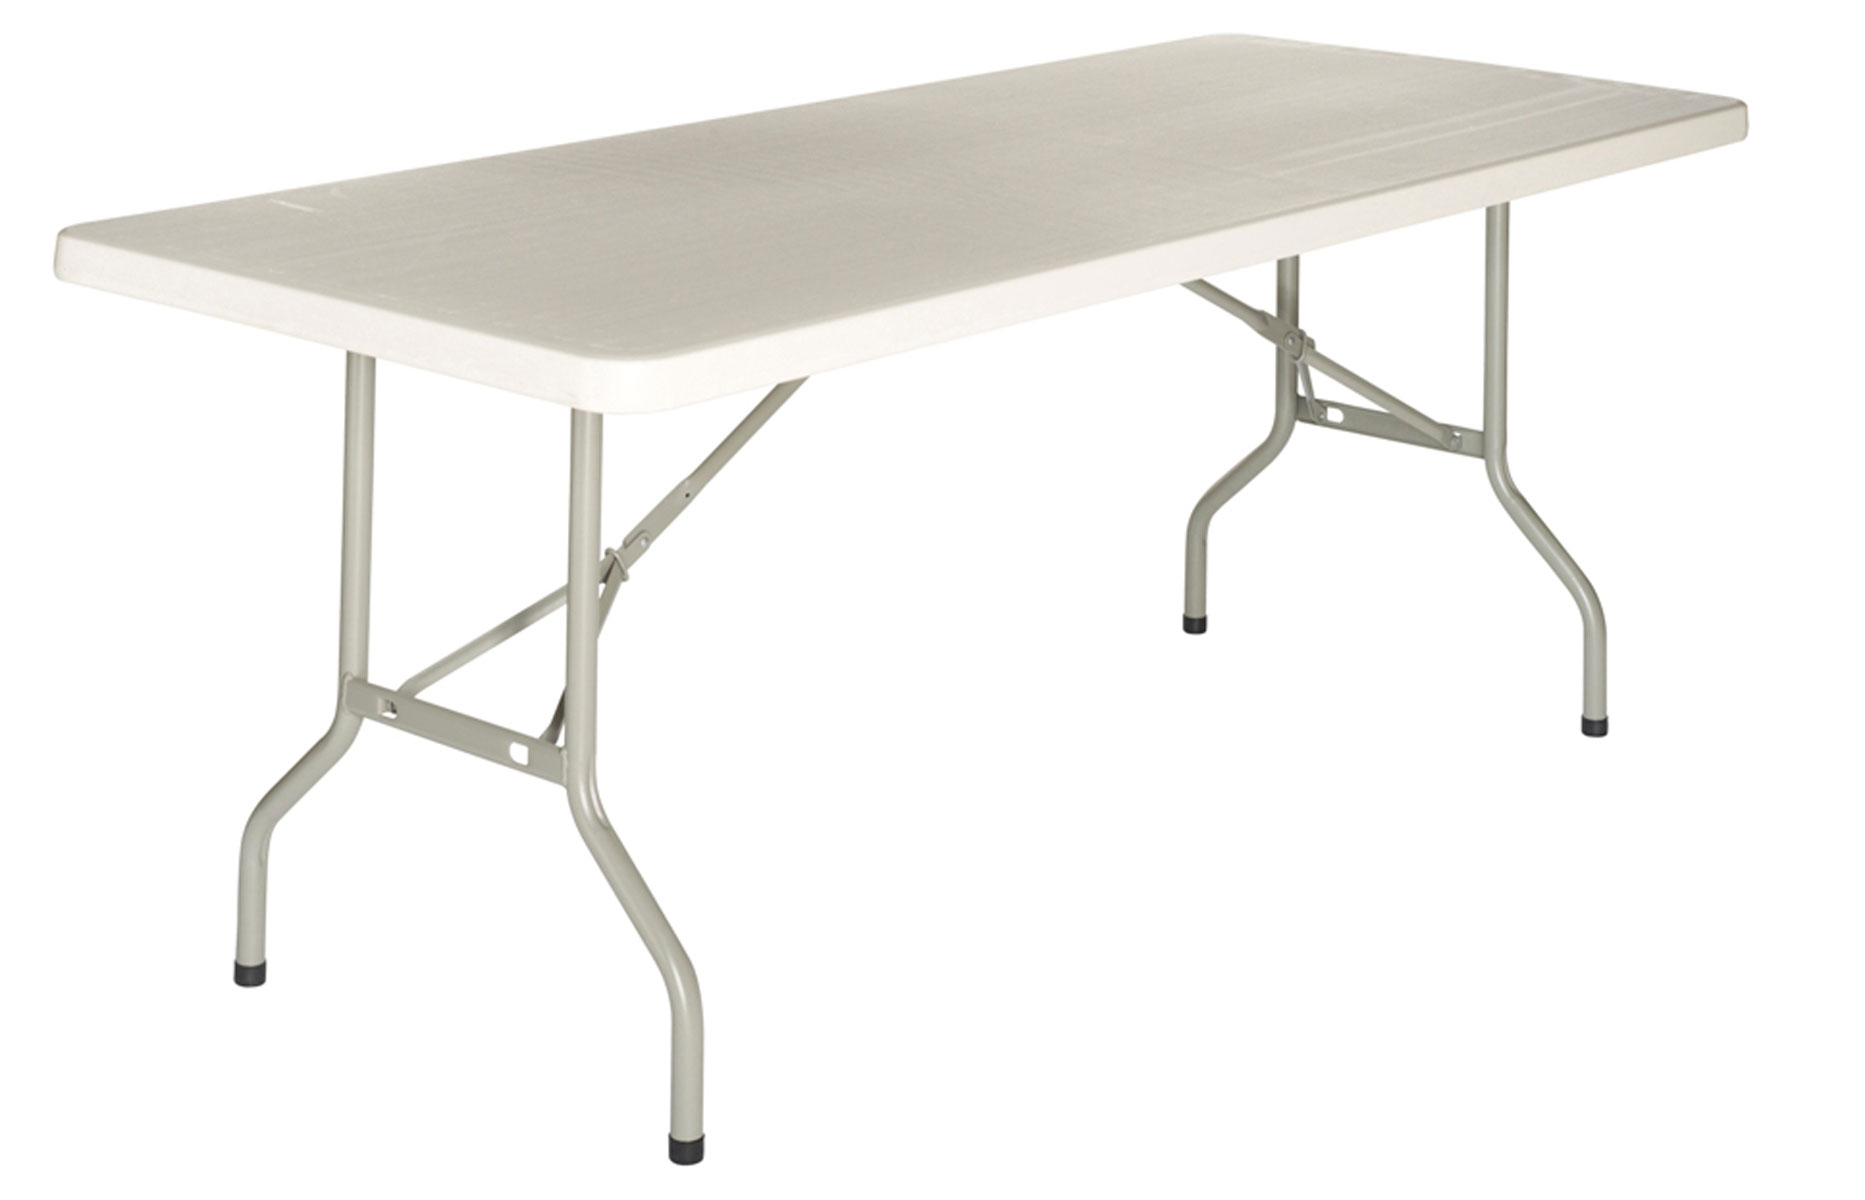 Table pliante en plastique tulle table pliante en for Table de jardin pliante plastique